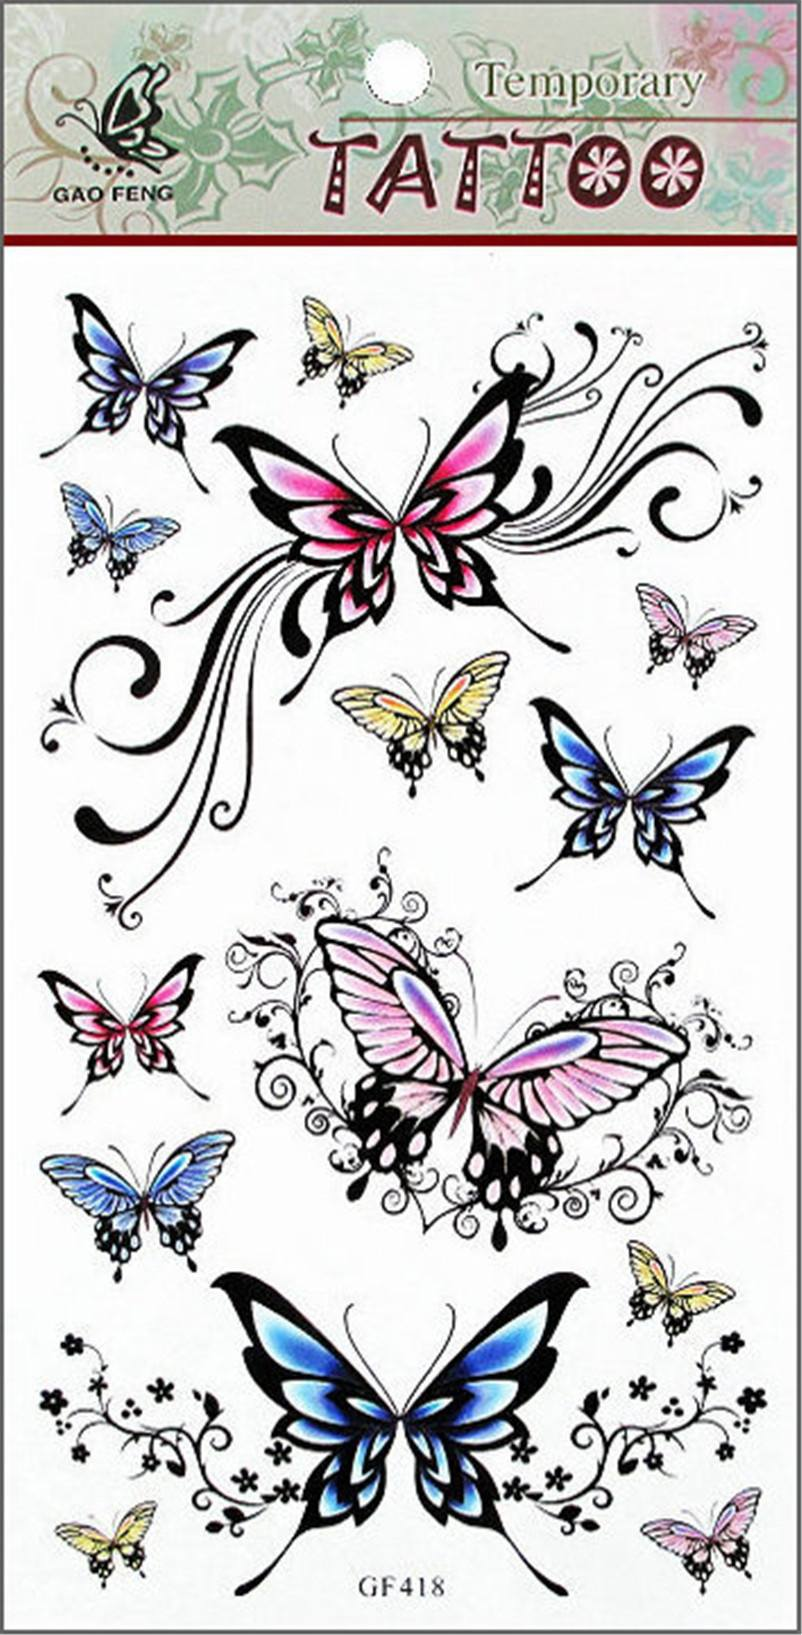 Fashion Removable Waterproof Temporary Tattoo Butterfly Tattoos Fake Sexy Body Art Sticker-1